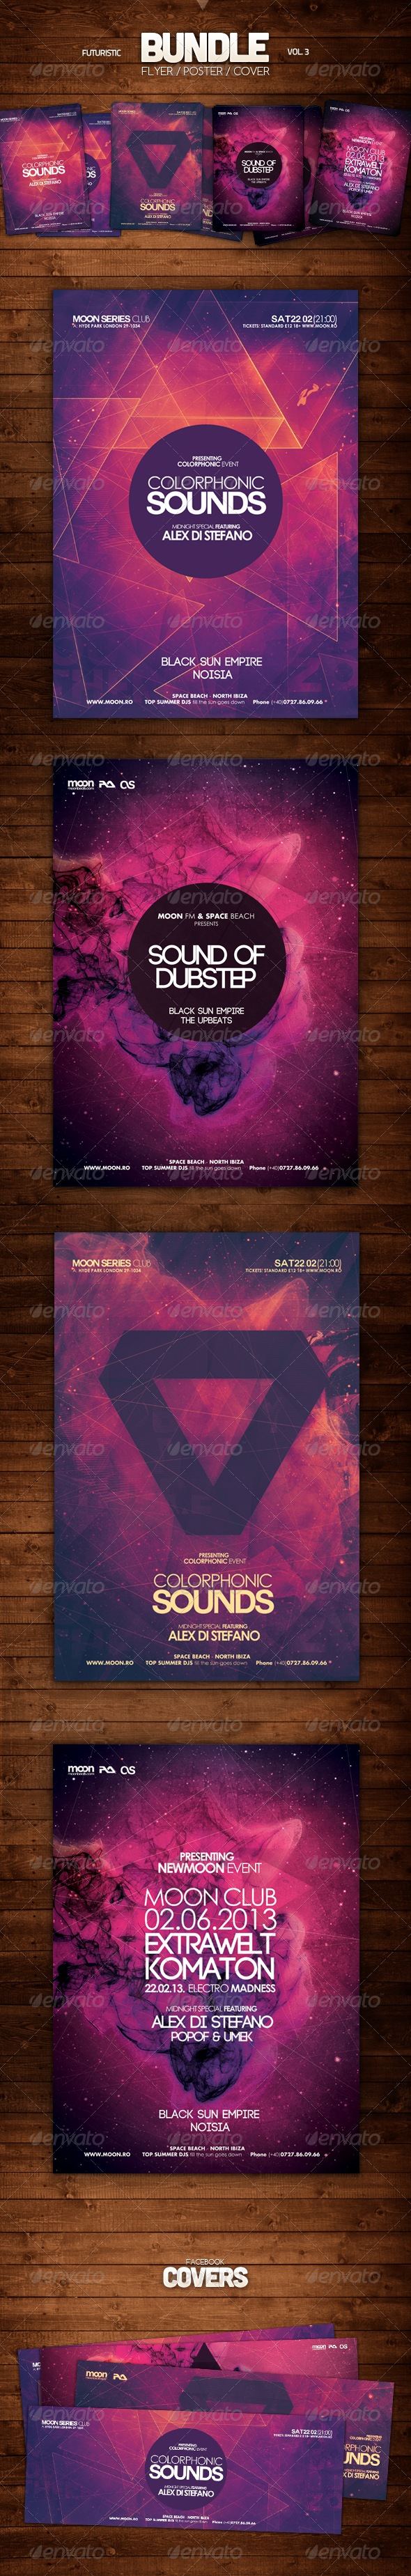 GraphicRiver Futuristic Bundle Vol 3 6284925